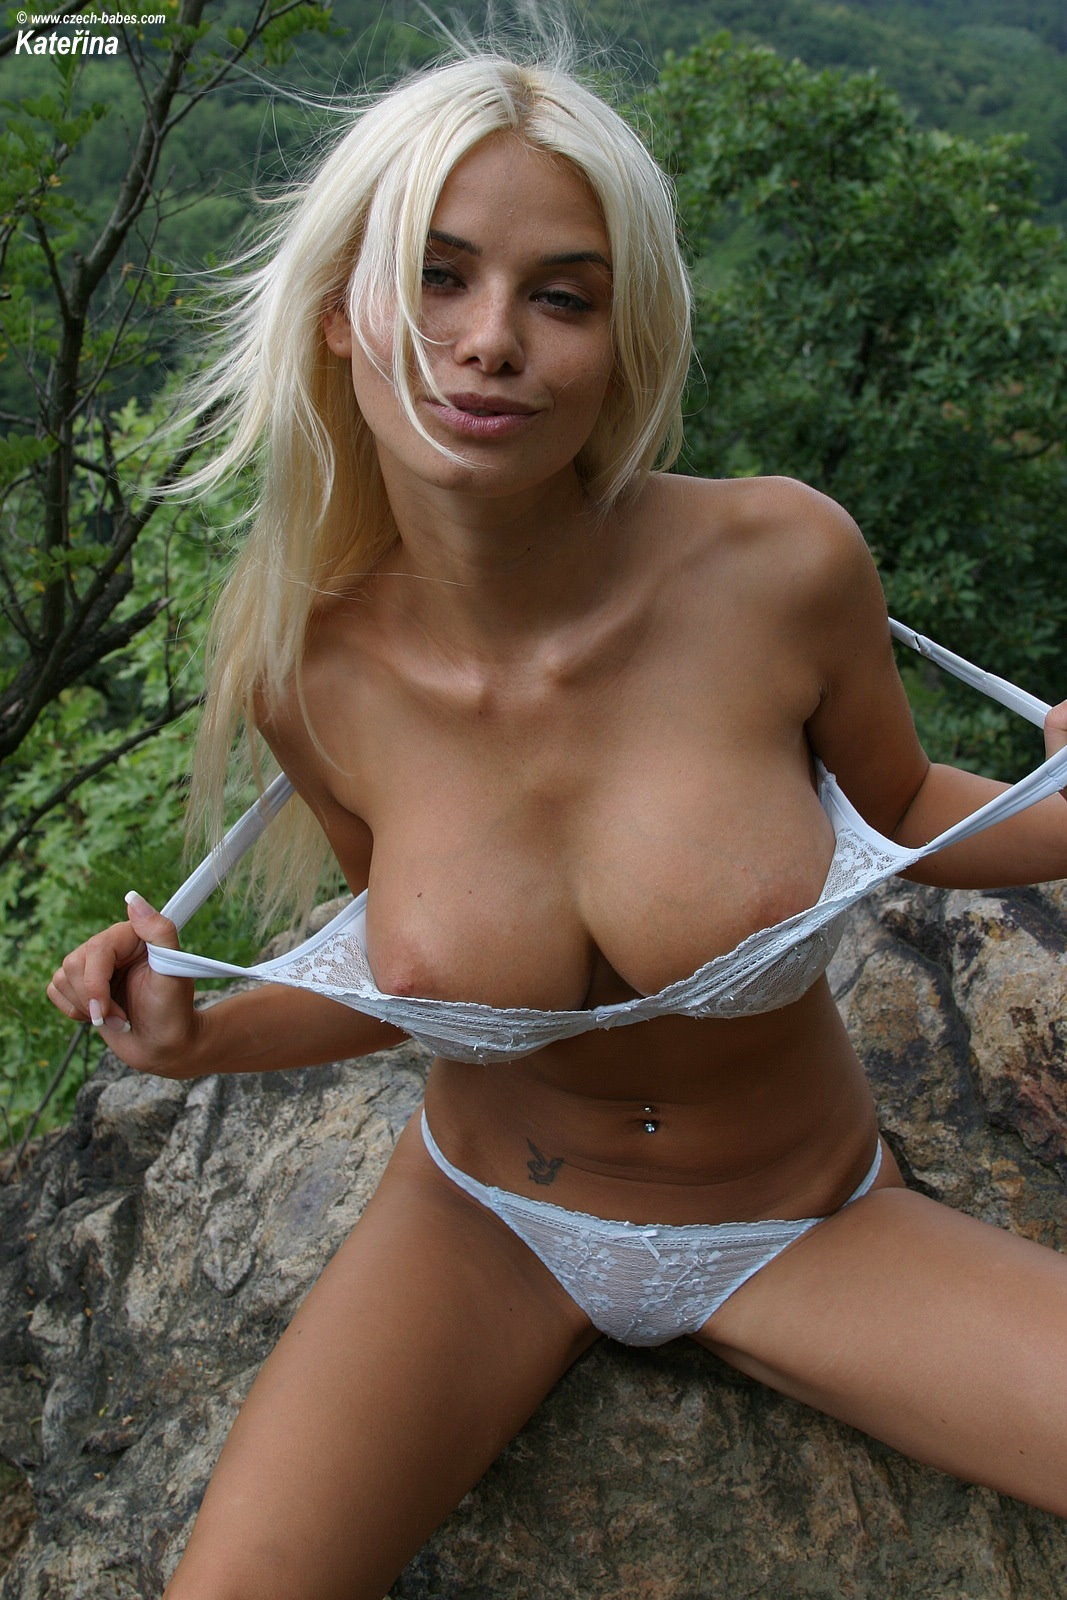 katerina-nude-mountain-lingerie-huge-tits-blonde-10